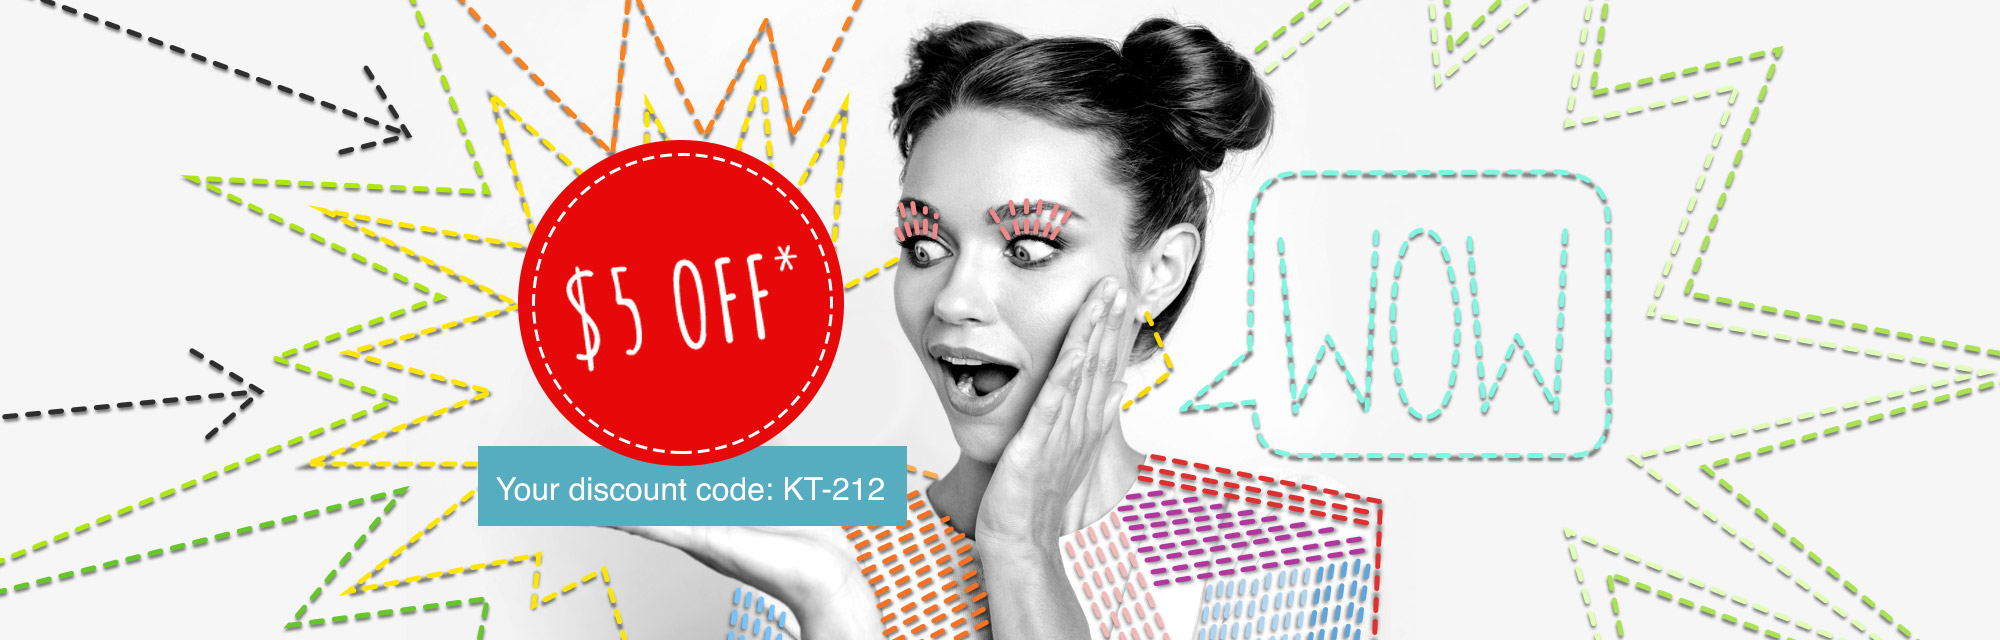 Your $5 discount voucher is waiting for you!